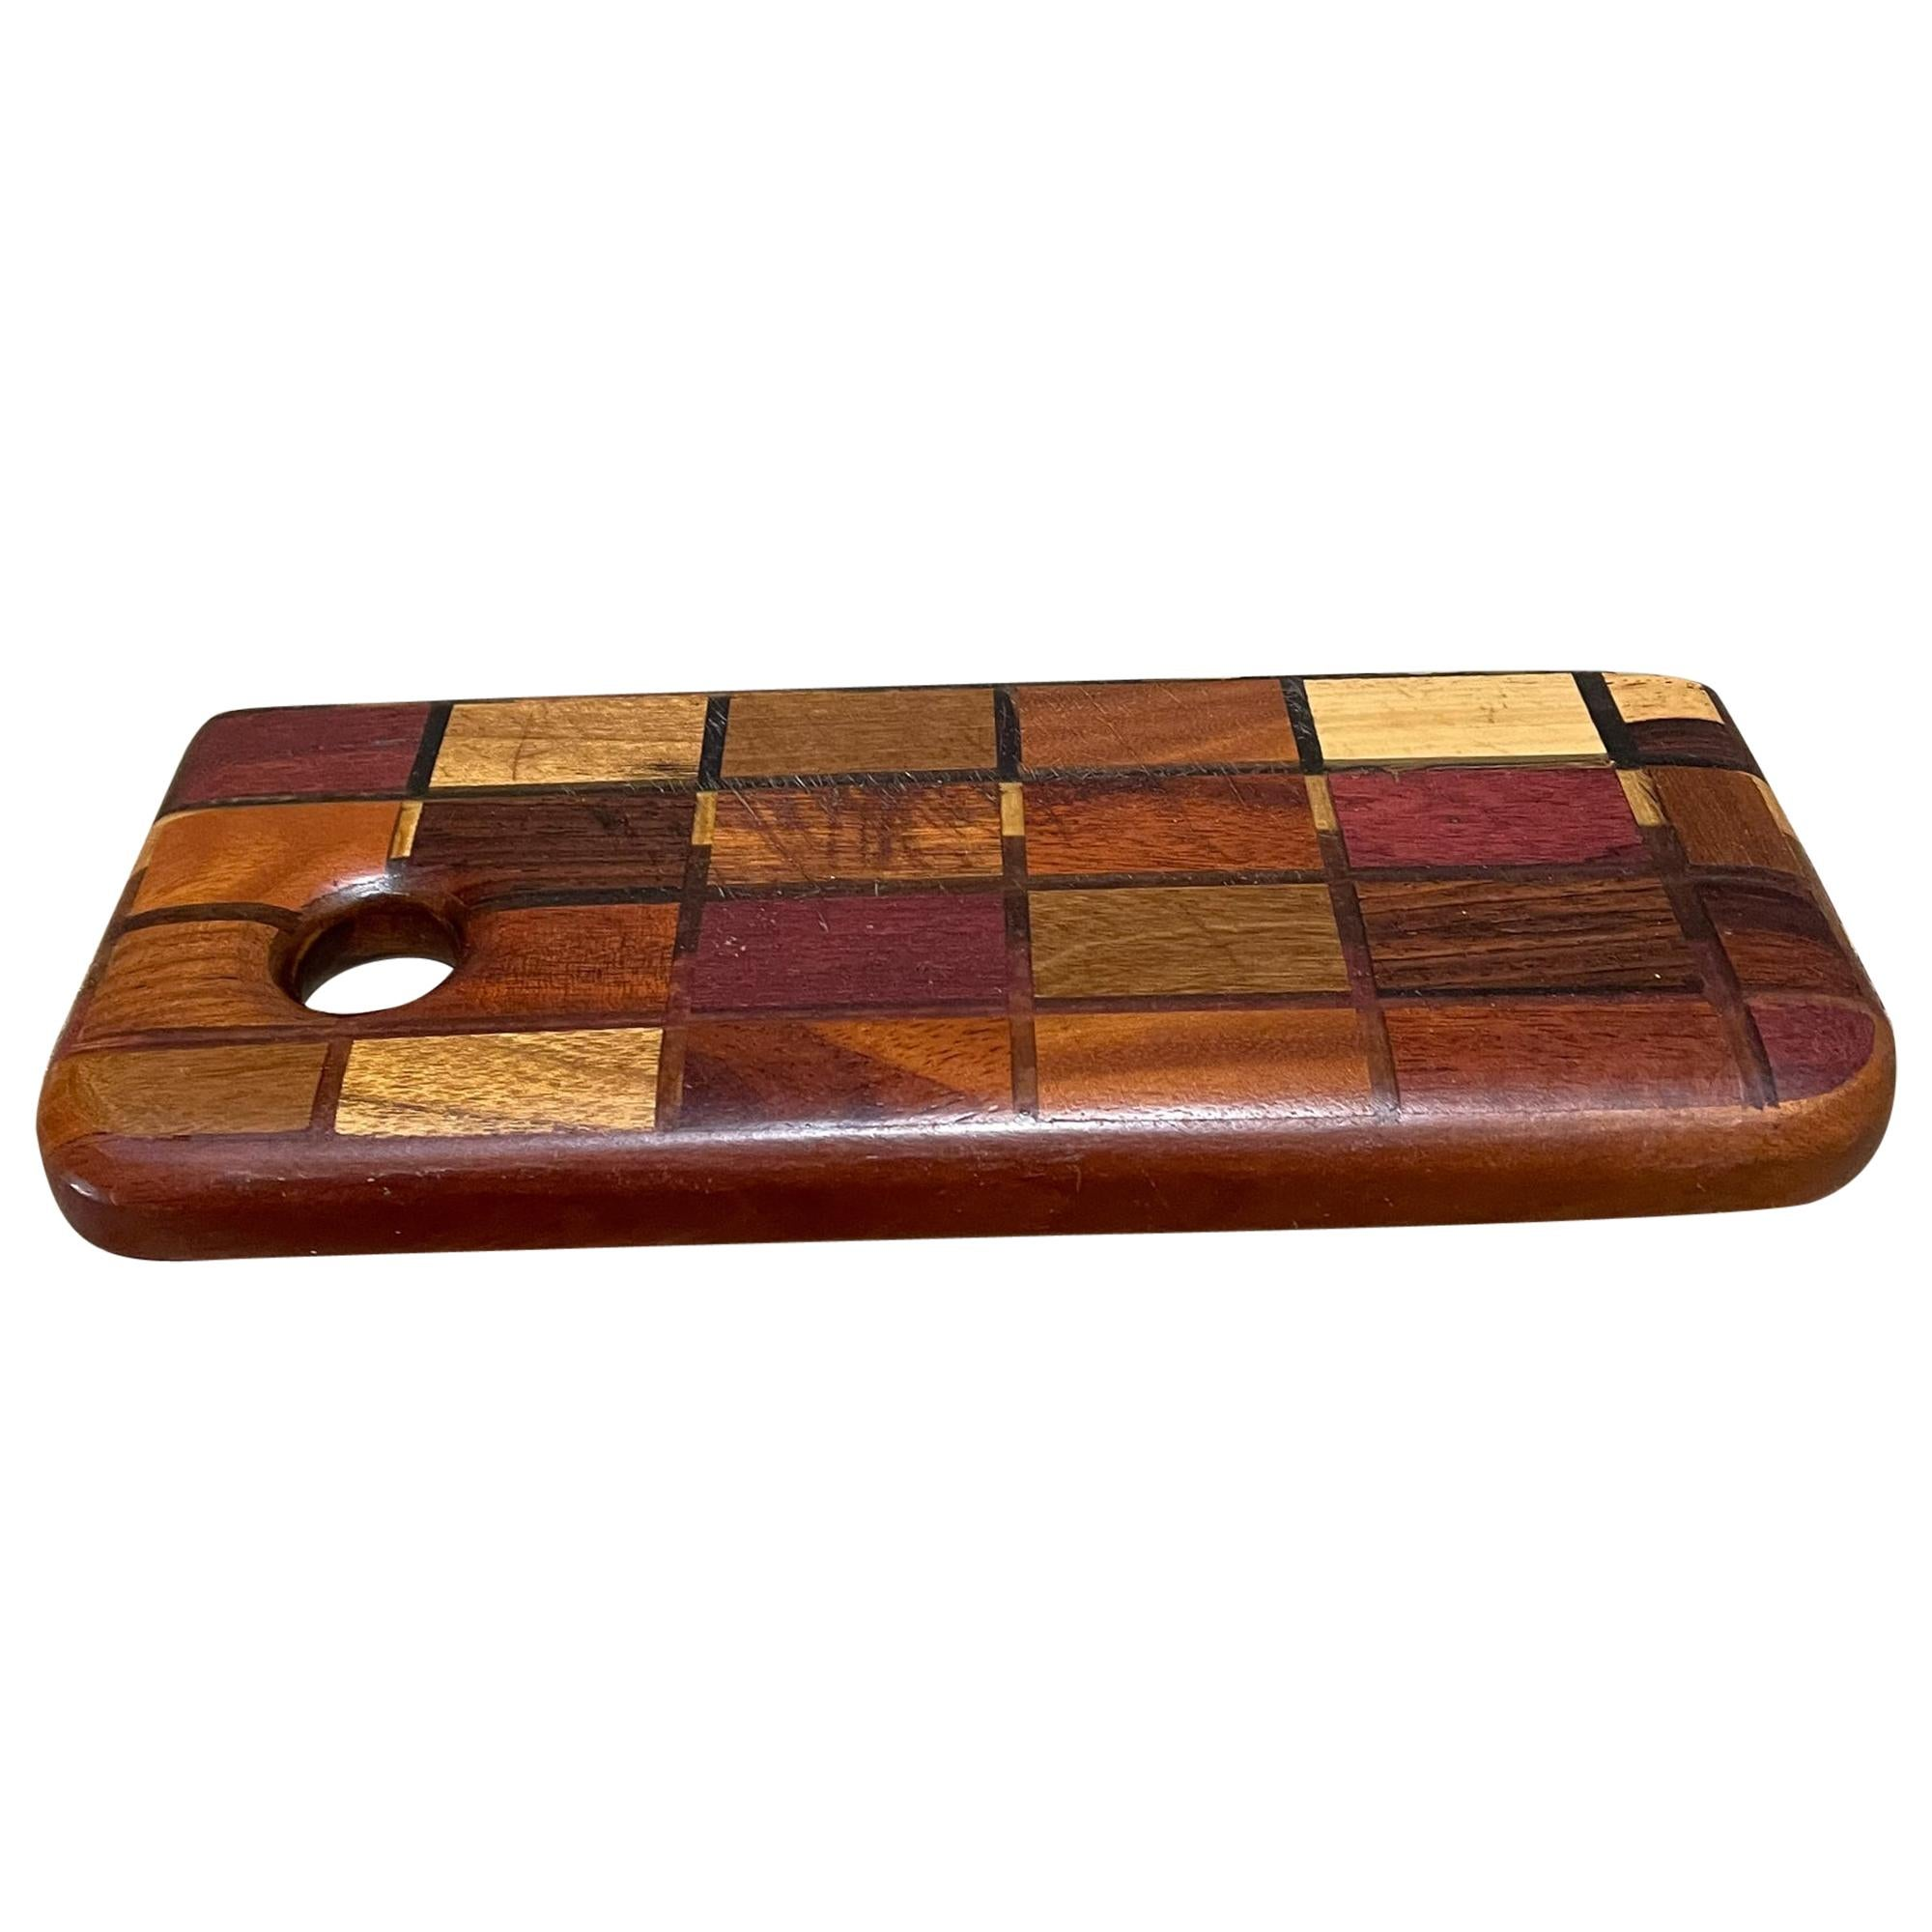 Don Shoemaker Style Exotic Checkered Wood Cutting Board Entertaining, 1960s